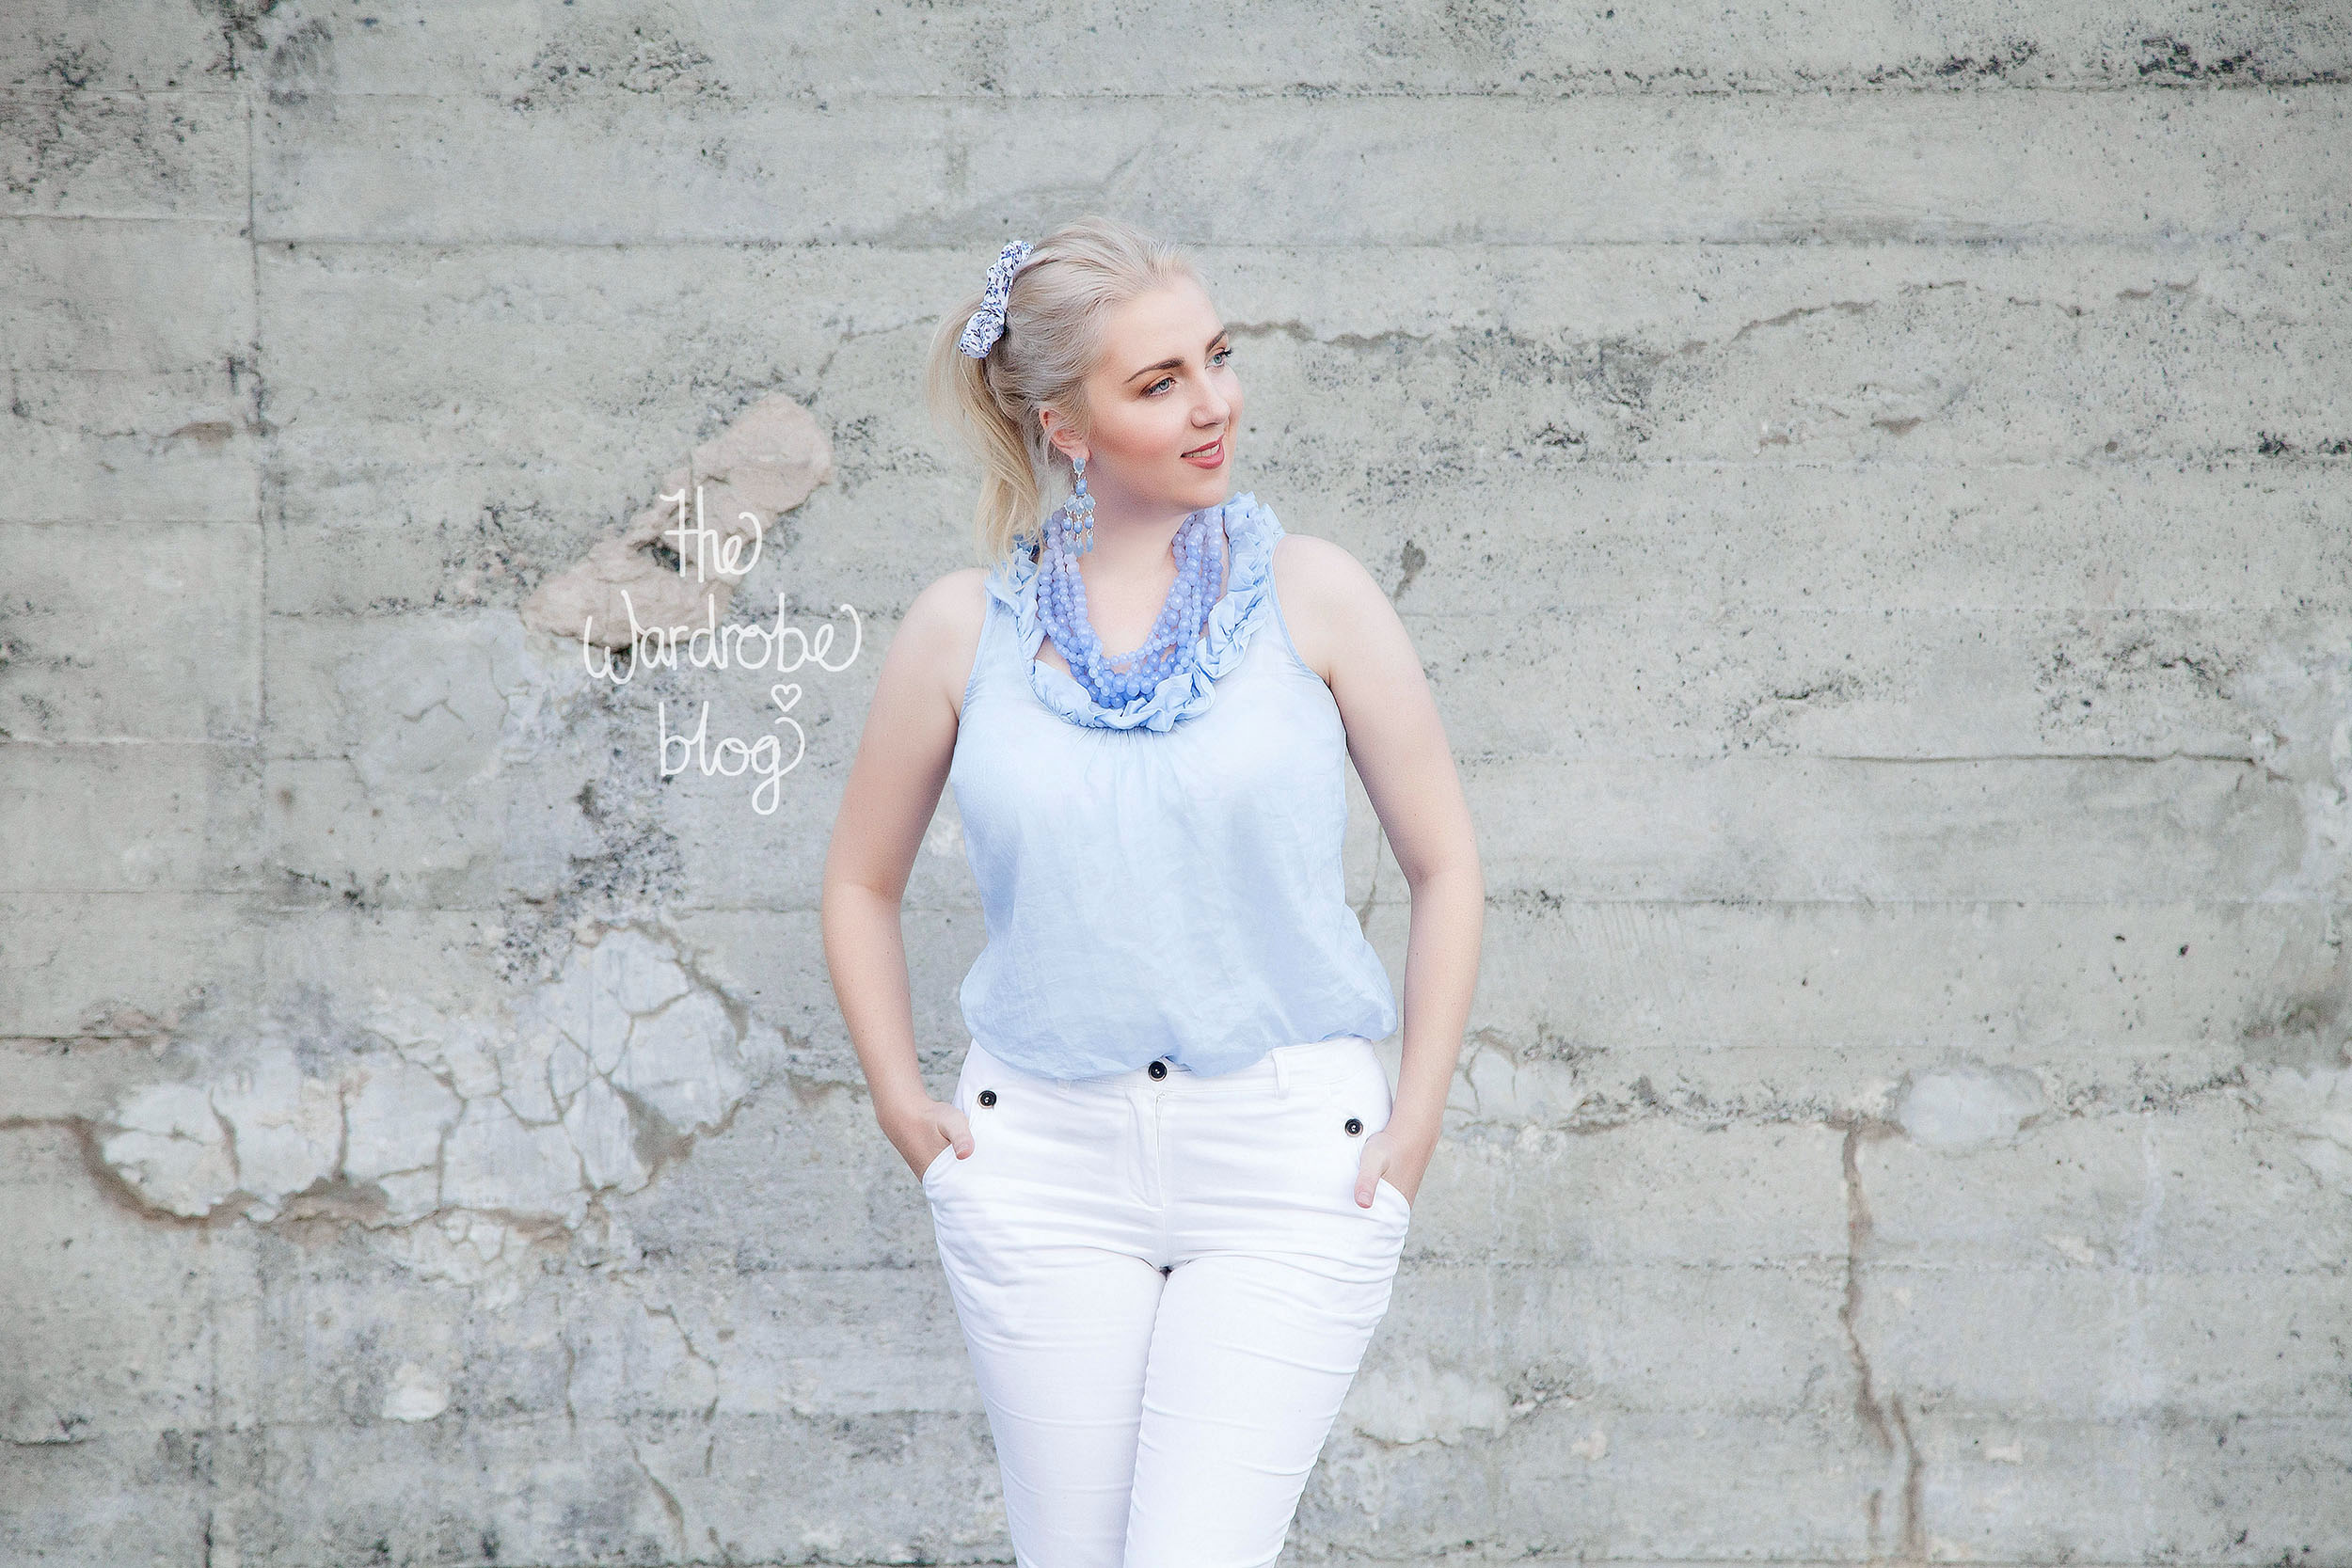 Chinos + Top from Sussan, Necklace + Earrings from Lovisa Jewellery.